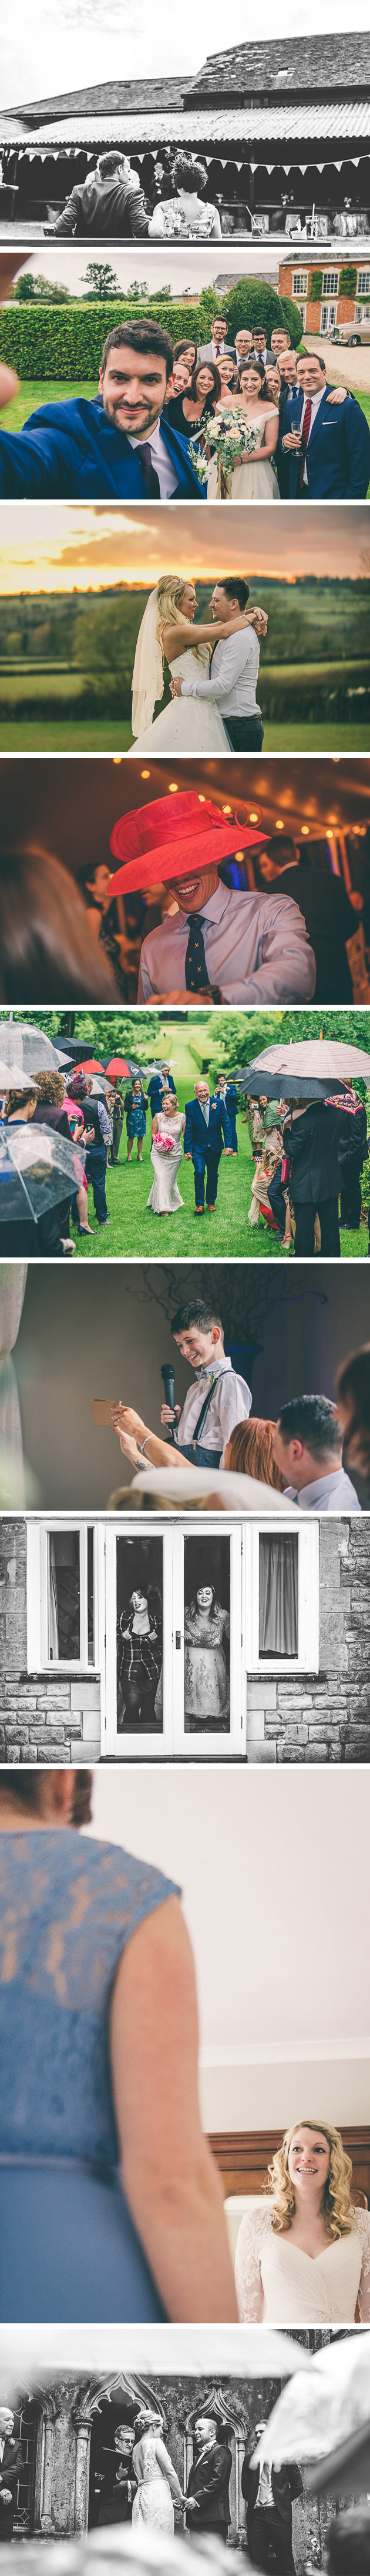 Compilation of Wedding Images